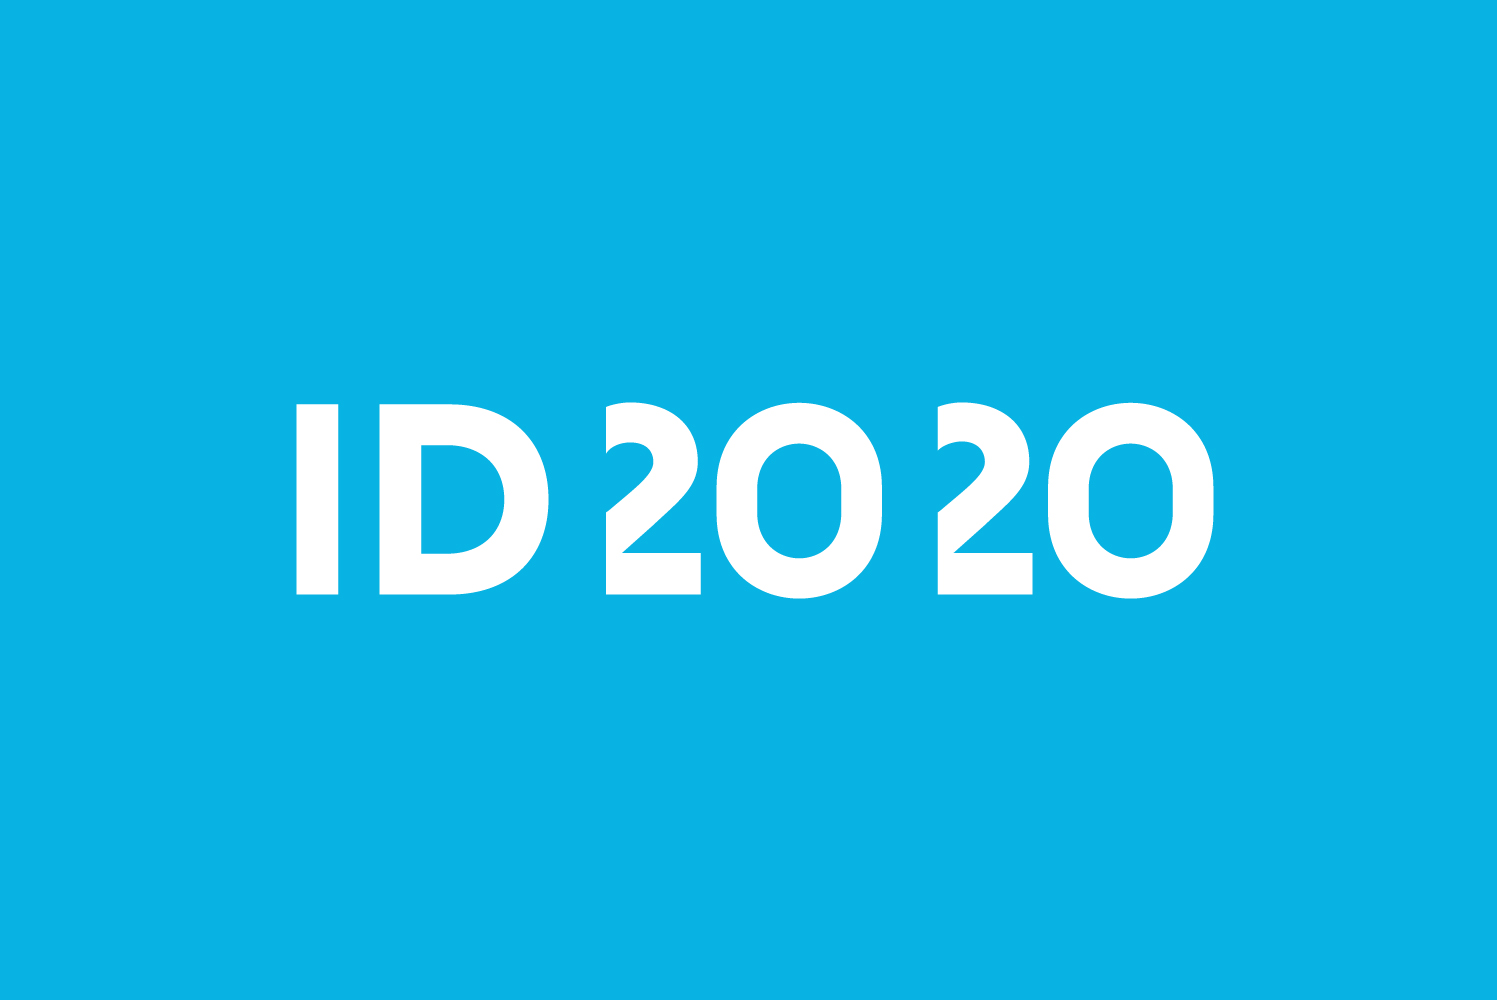 Cover image: ID2020